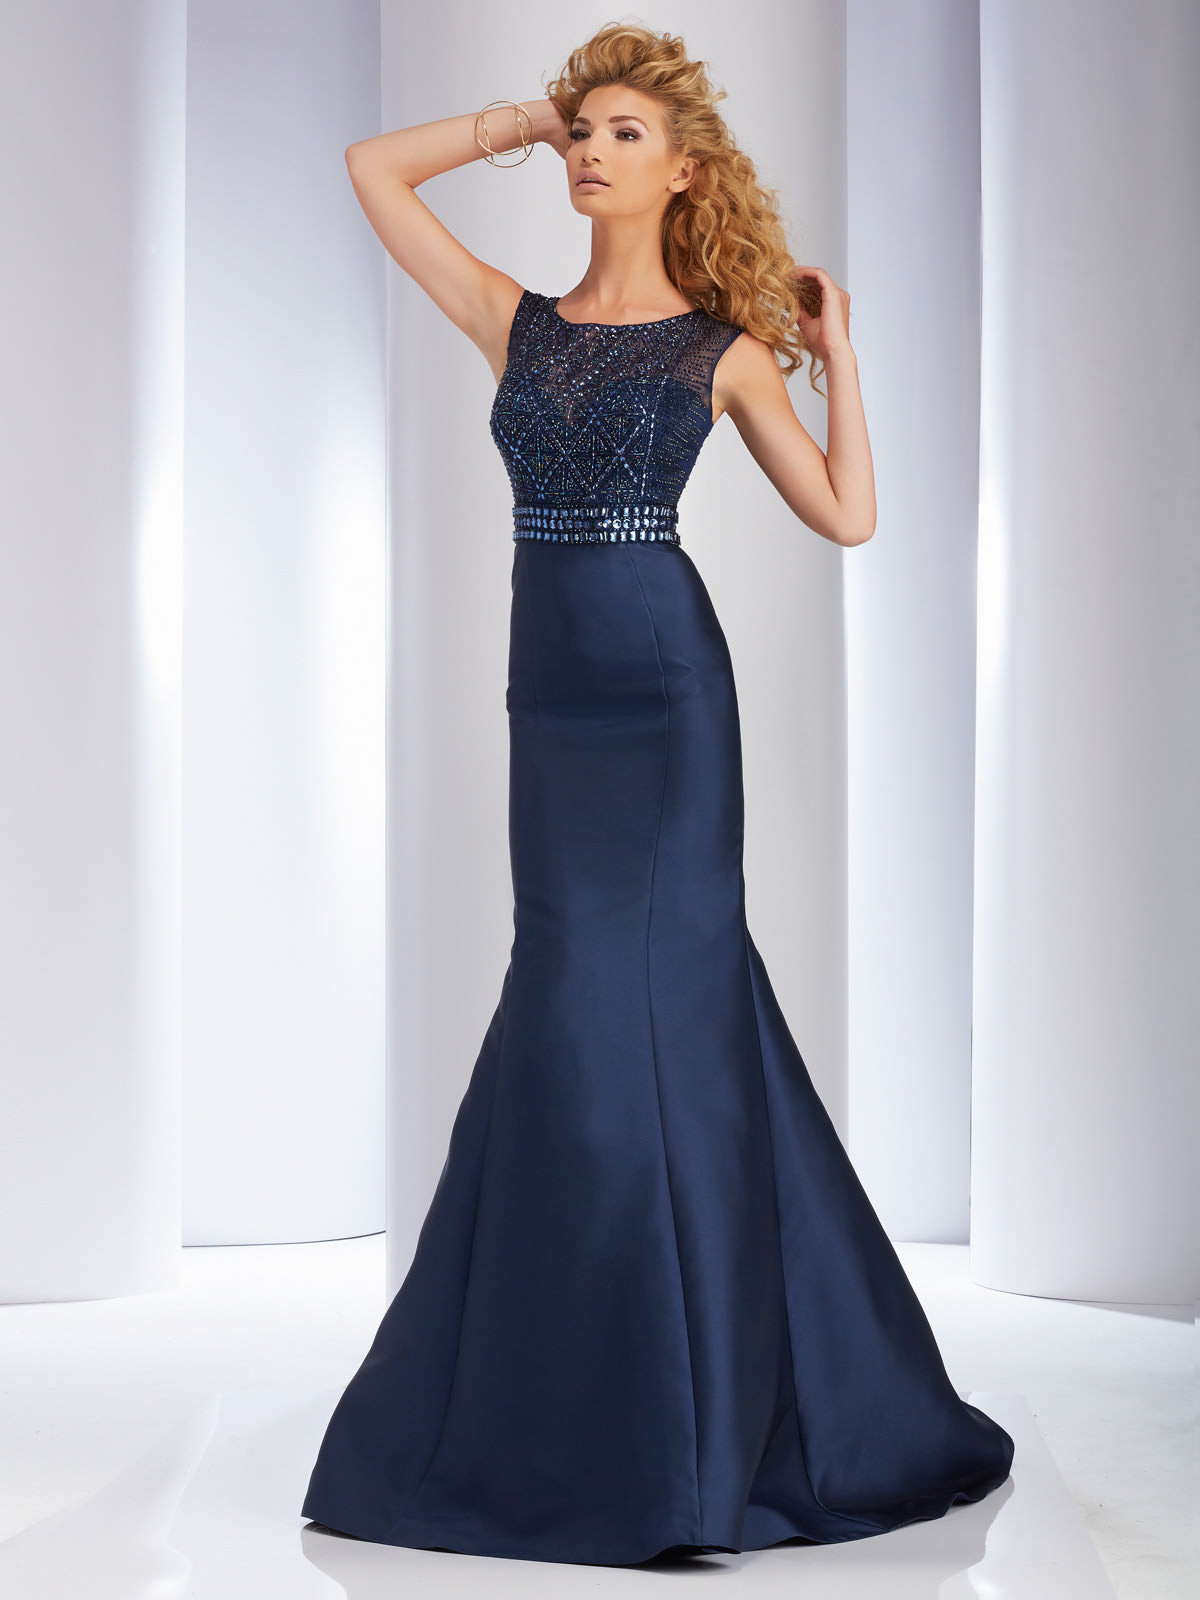 Clarisse 2790 Prom Dress | Promgirl.net